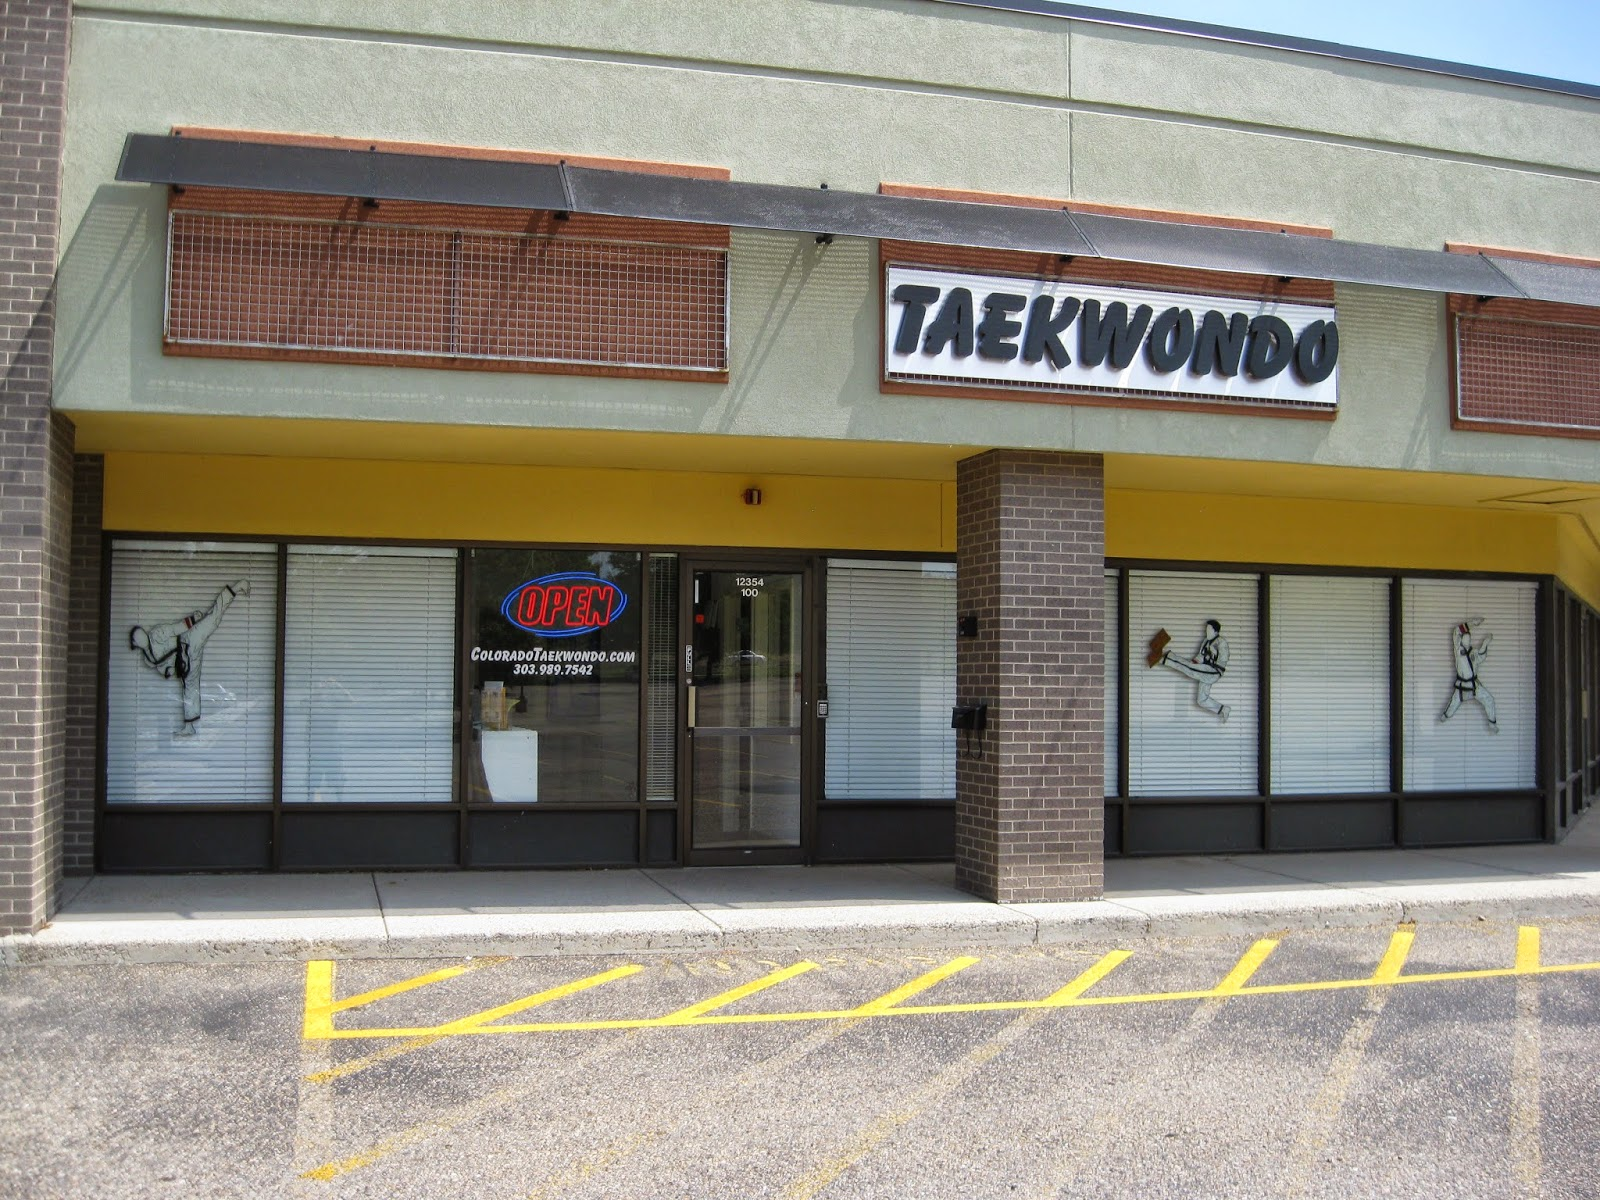 The front of the Lakewood martial arts school